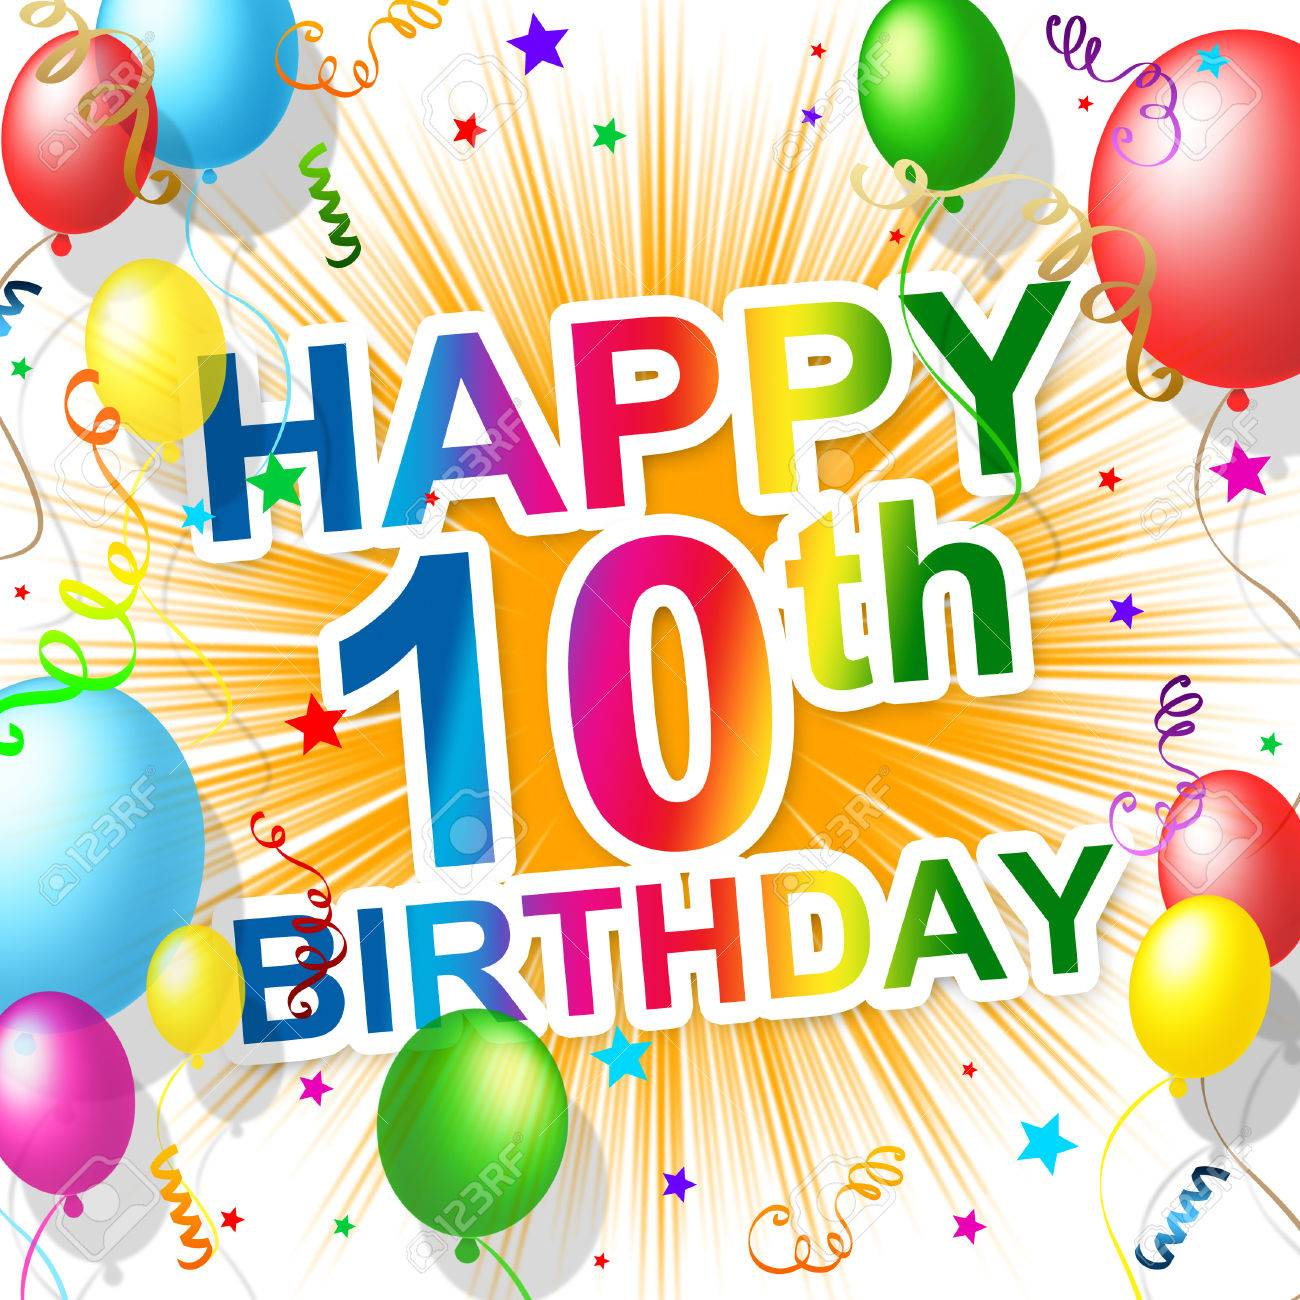 Birthday Tenth Meaning 10 Congratulating And Celebration Stock Photo